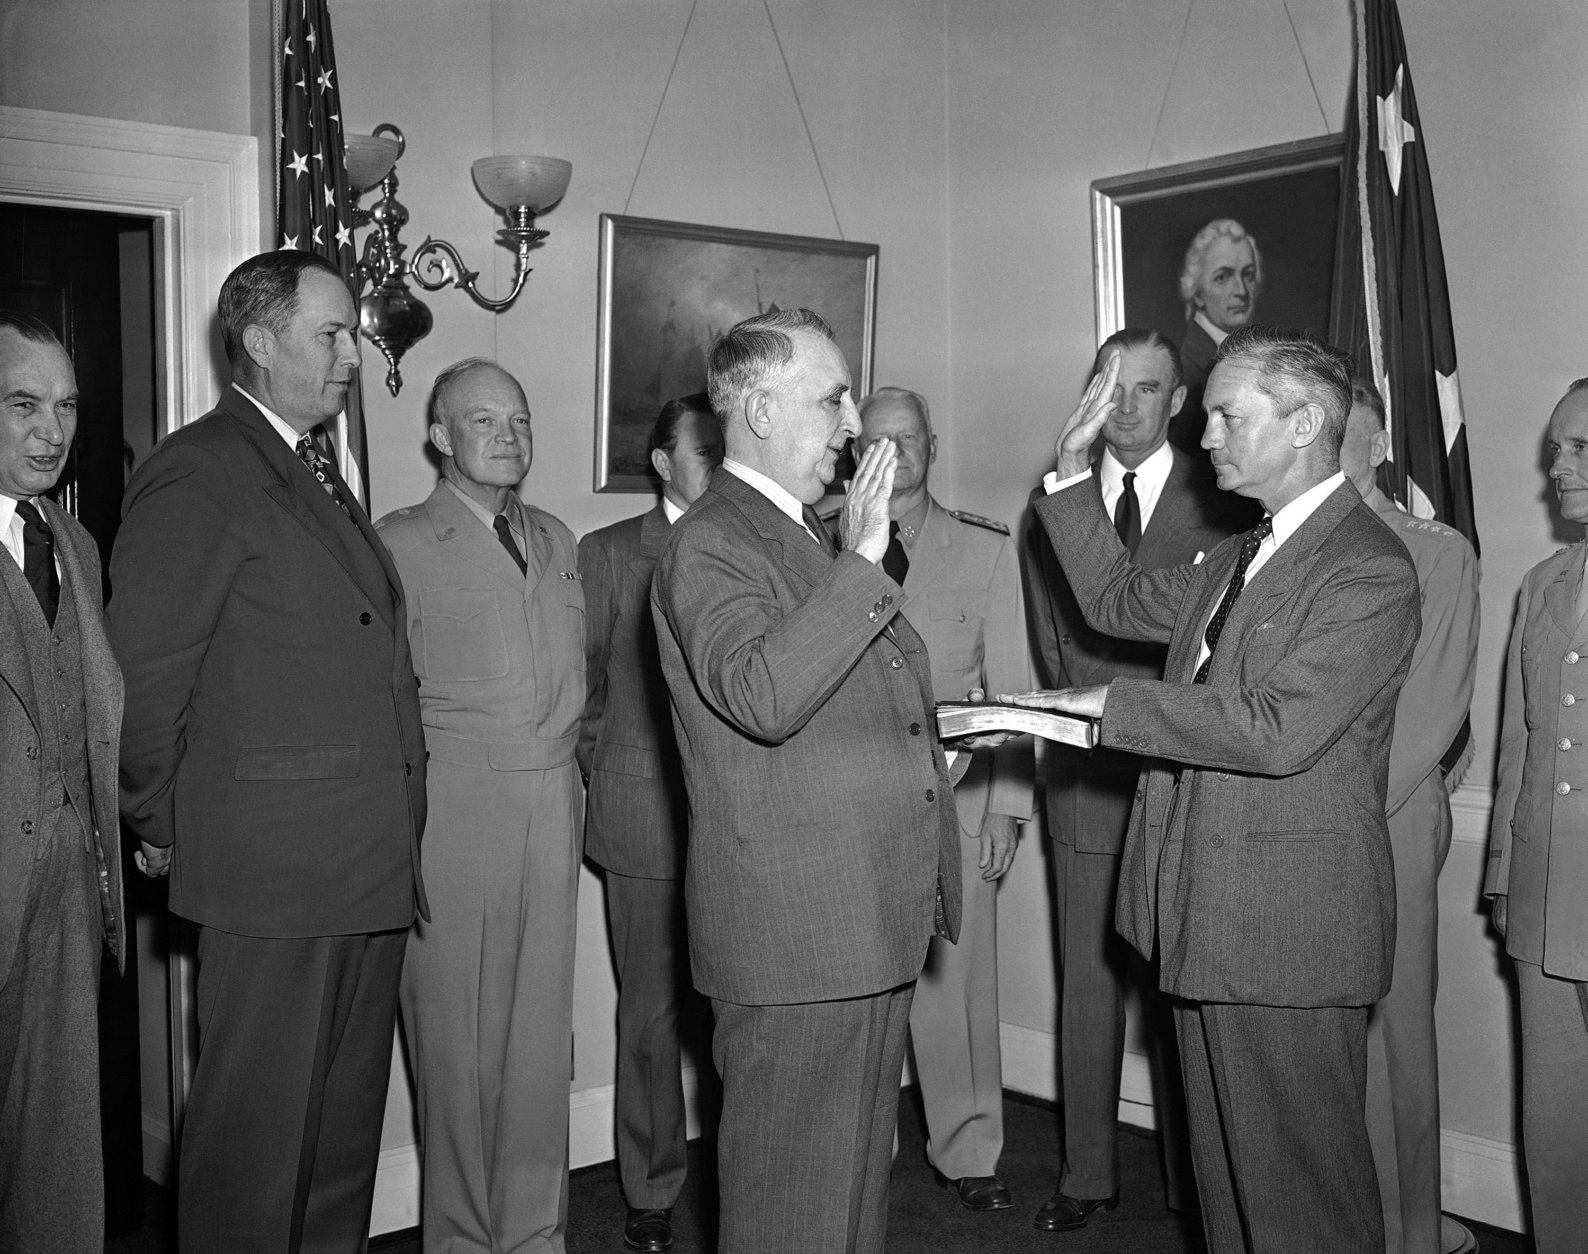 James V. Forrestal (right foreground) takes oath as the nation's first secretary of defense, administered by chief justice Fred M. Vinson (center) at the navy department in Washington on Sept. 17, 1947. Witnessing the ceremony, left to right, are: Secretary of War Kenneth Royall; Army Chief of Staff Dwight D. Eisenhower; Navy Undersecretary John; Chester W. Nimitz; Undersecretary of War S. Stuart Symington and General Carl Spaatz, Air Force Chief. (AP Photo/WX)